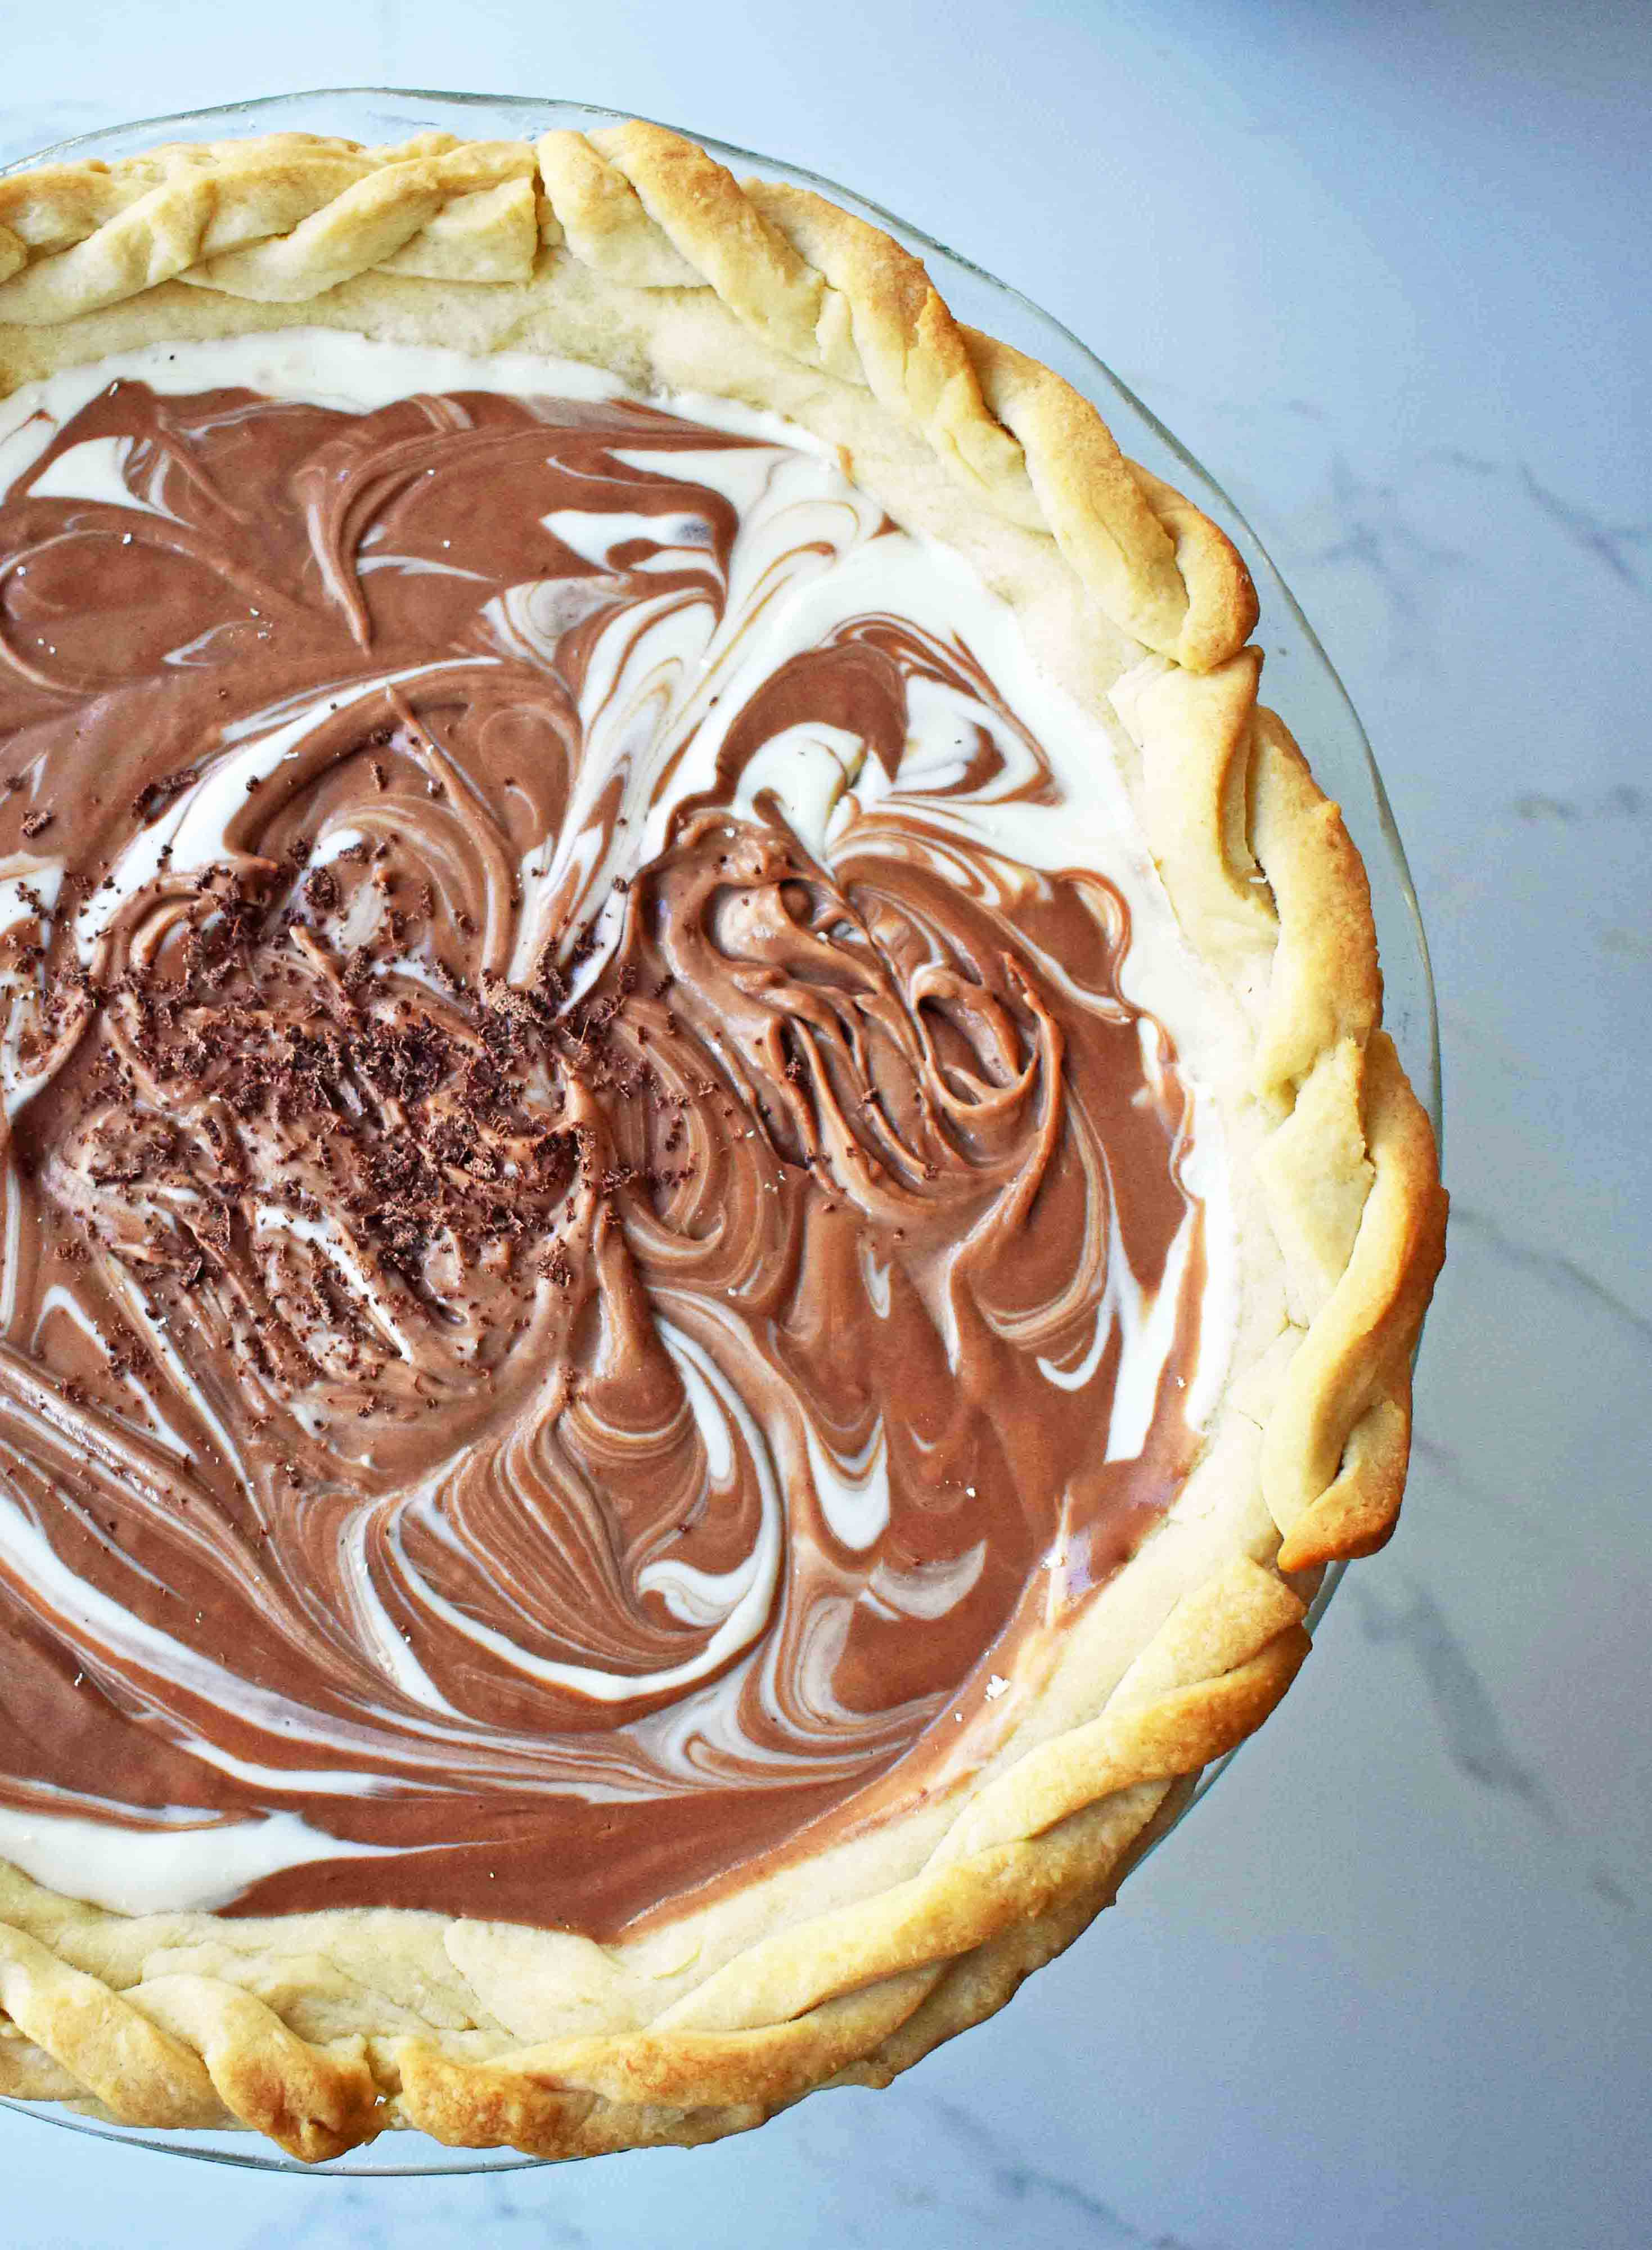 Chocolate Marshmallow Marble Pie. Chocolate Marshmallow Cream swirled together with White Chocolate Marshmallow Cream for a rich, decadent, popular pie.